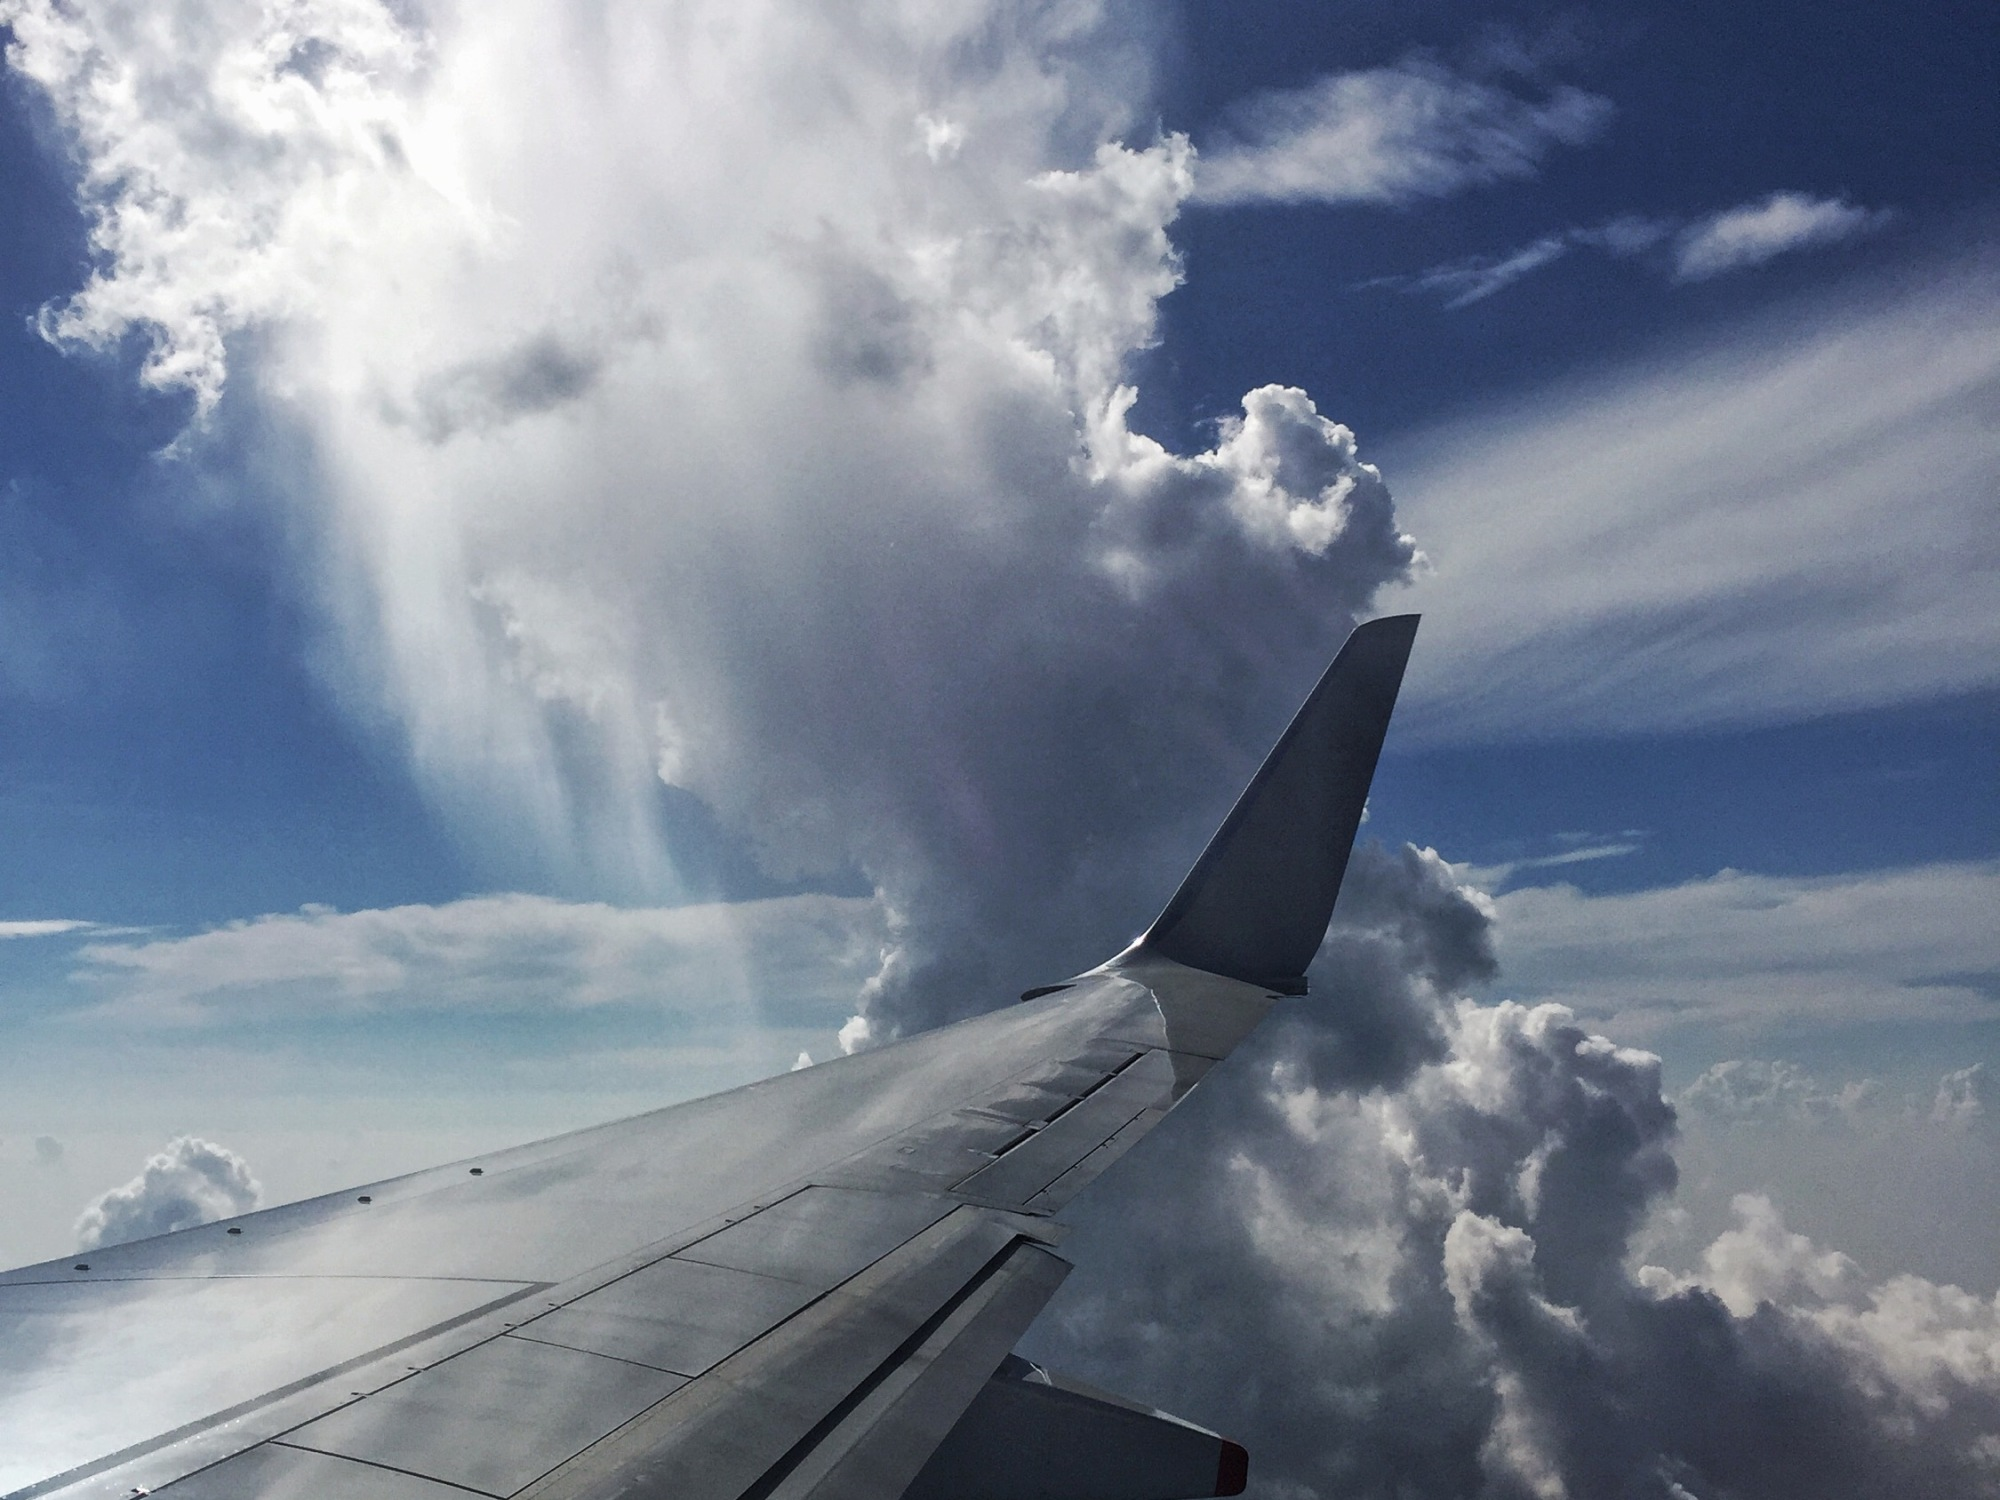 Some pretty dramatic cloud formations appeared the closer the plane got to Thailand.